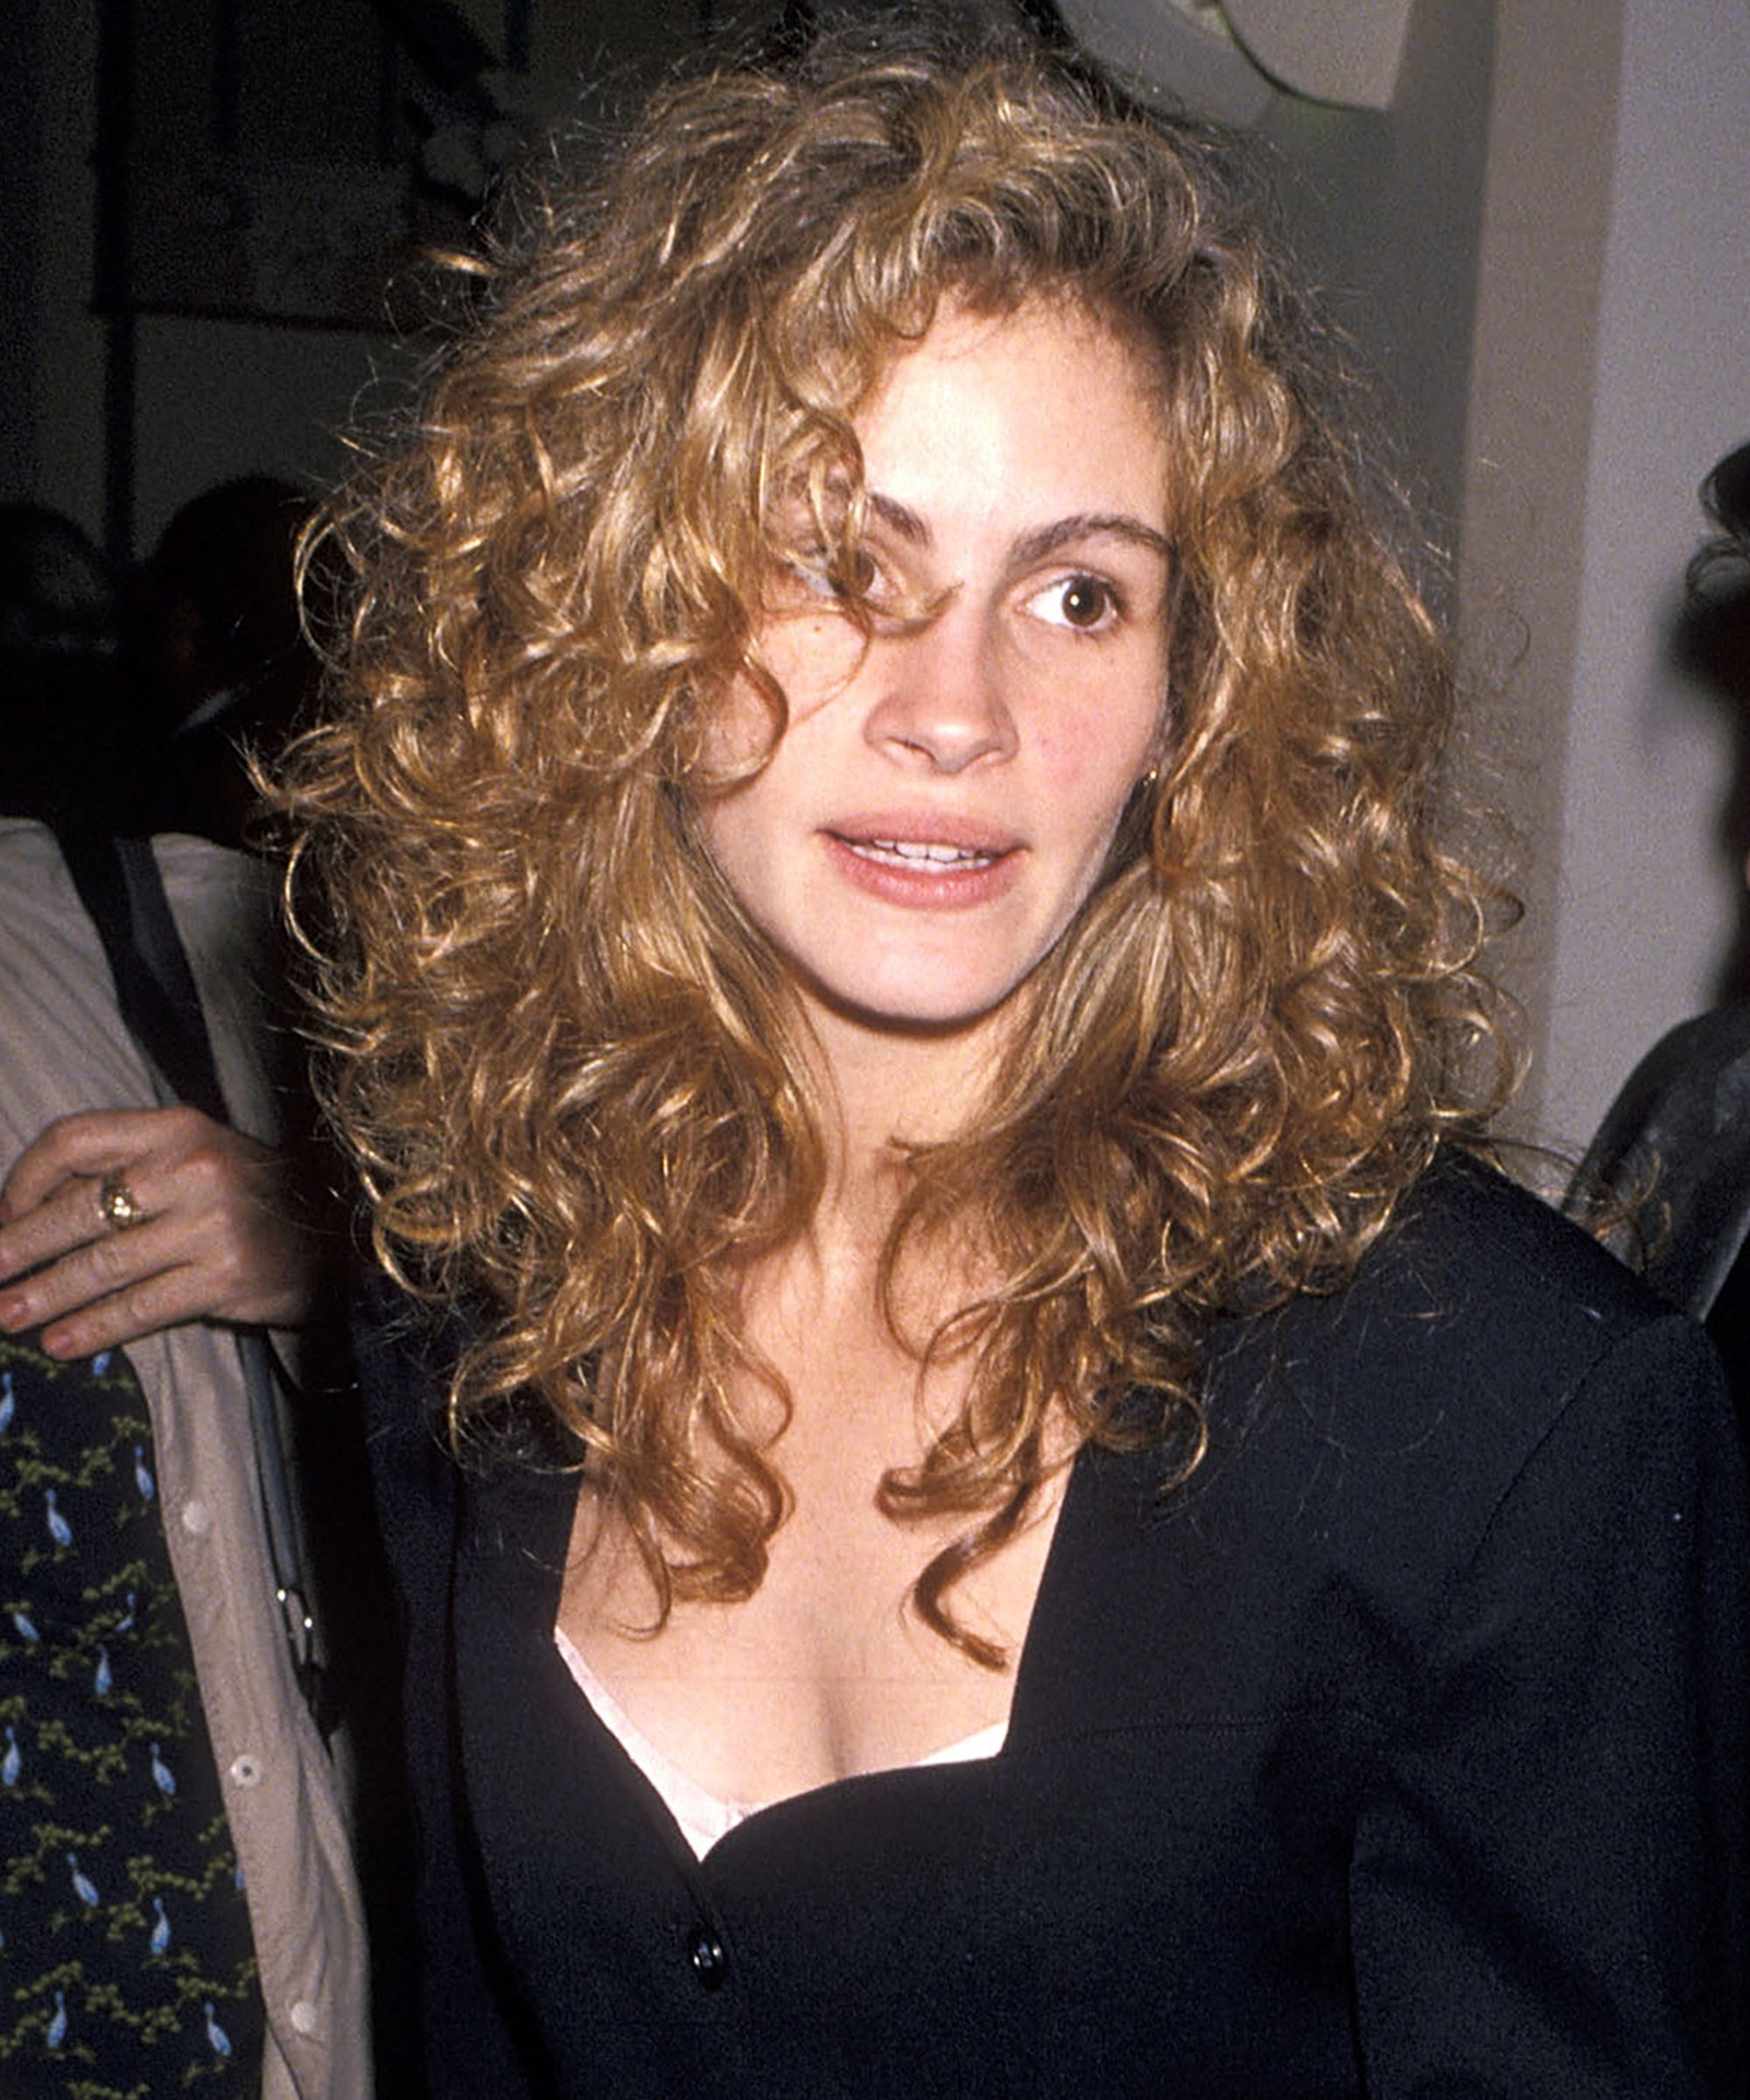 julia roberts best hair and makeup looks - curls, color